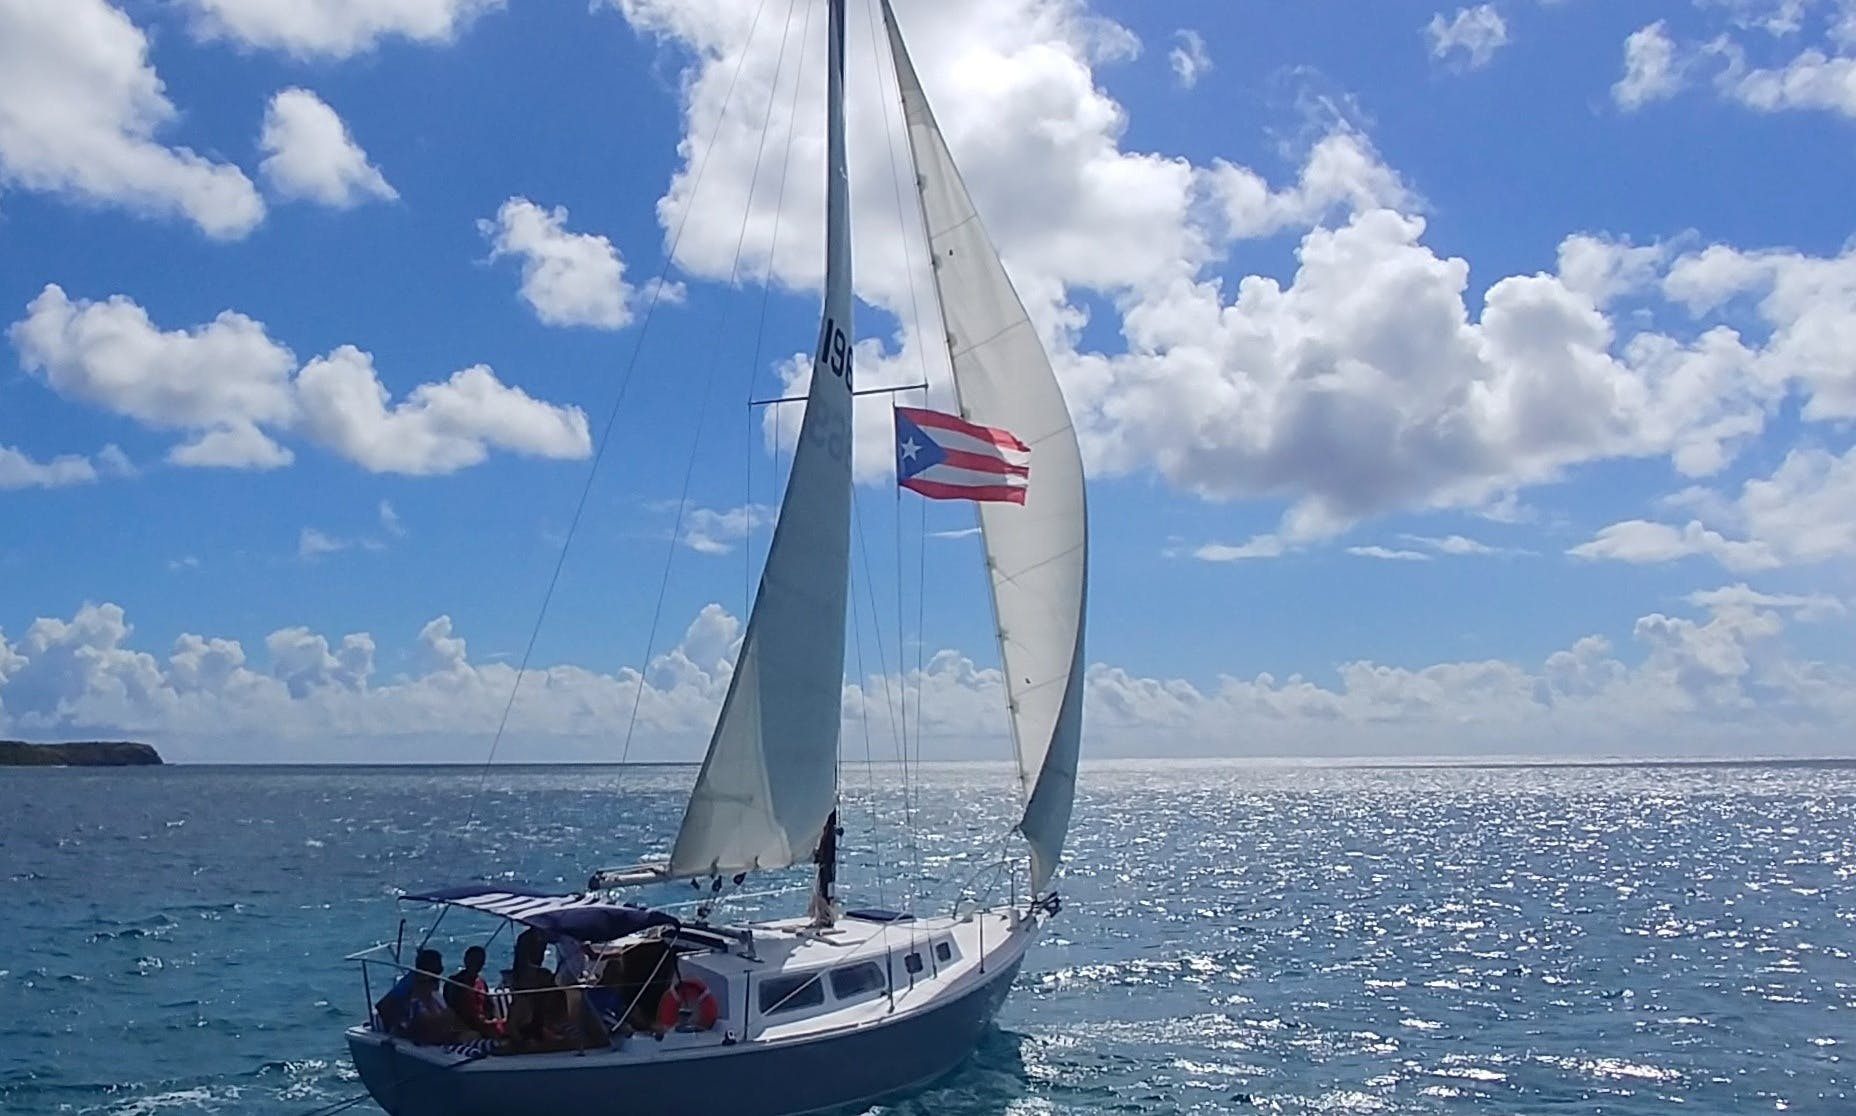 Sail, Snorkel, and Escape aboard SV Marauder with Vieques Sailing Charters!